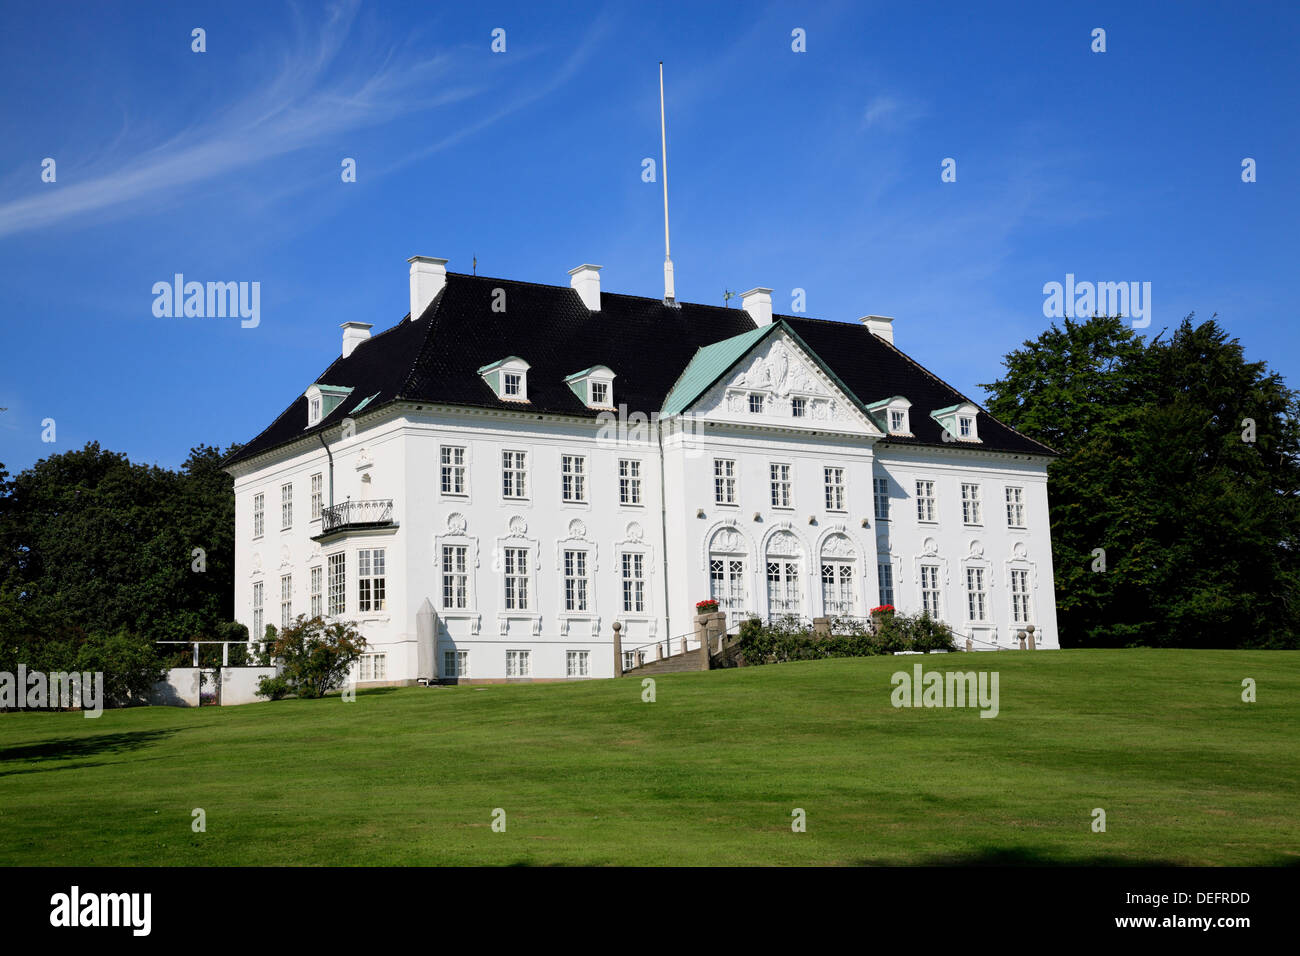 Royal palace Marselisborg, Arhus, Jutland, Denmark, Scandinavia, Europe Stock Photo